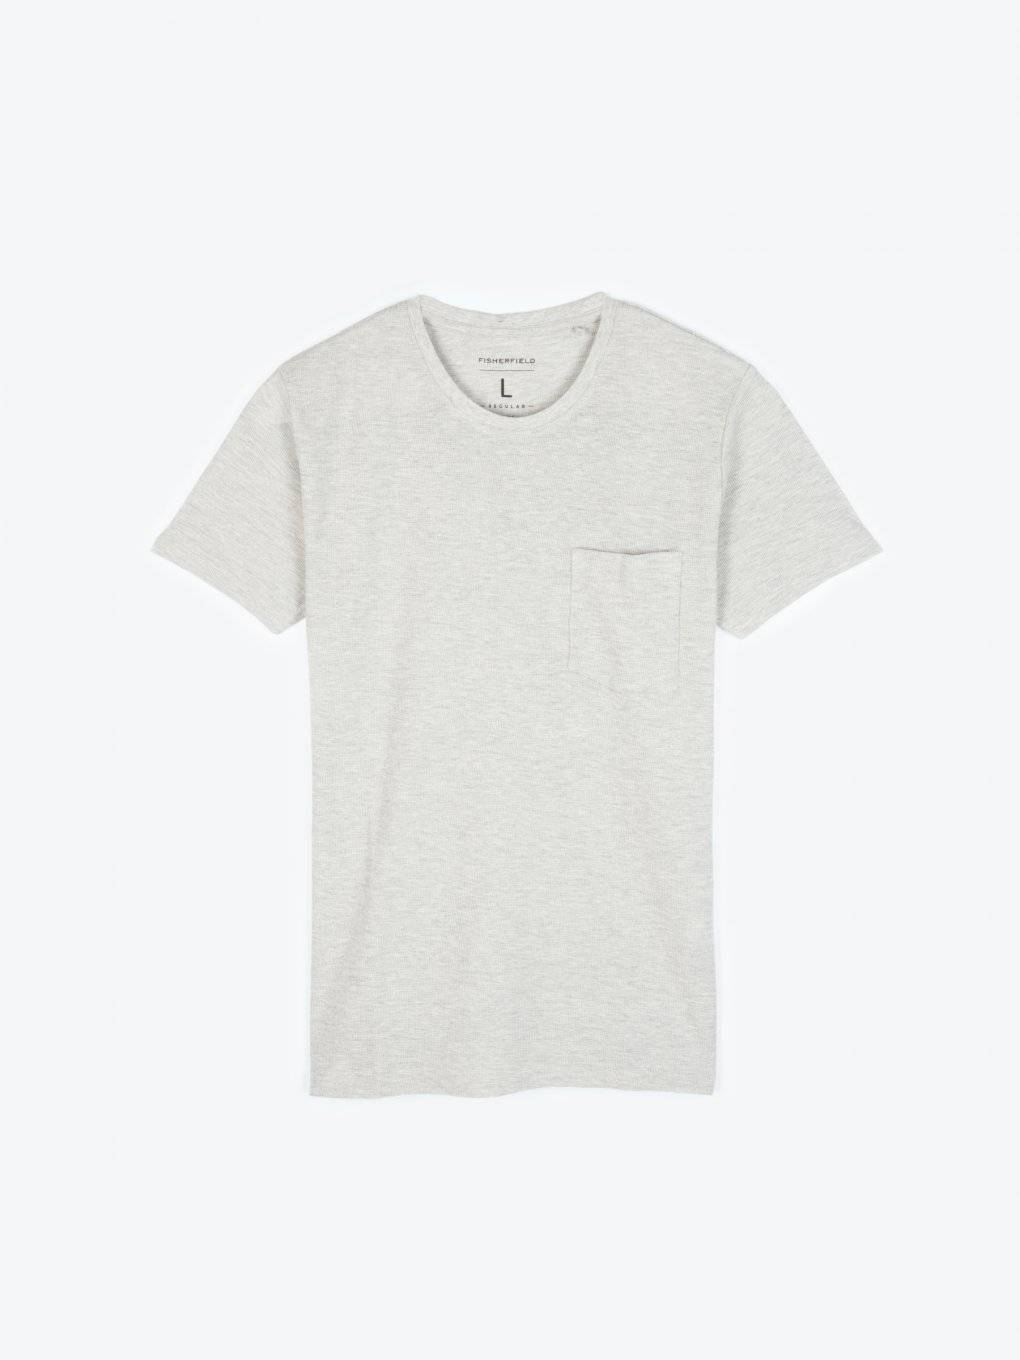 Basic waffle-knit short sleeve t-shirt